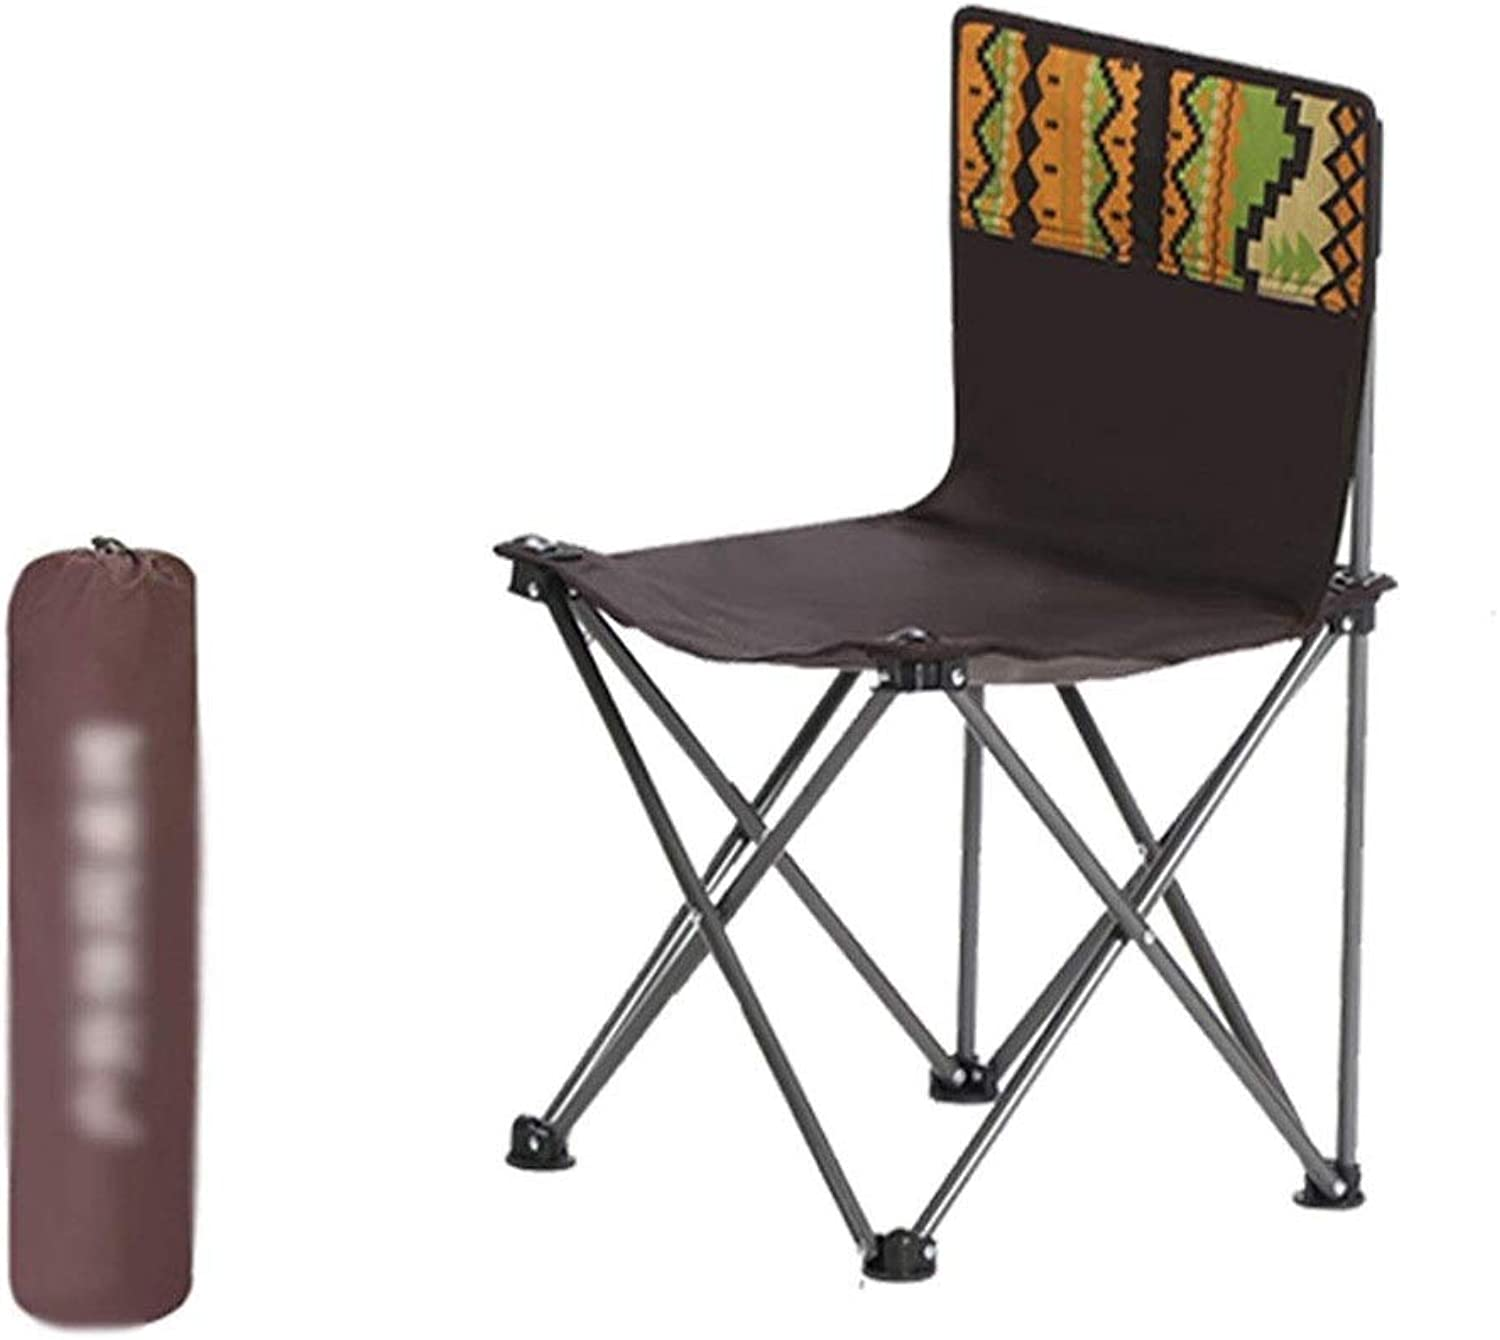 Outdoor Folding Chair Camping Chair  Outdoor Folding Chair Small Portable Camp Beach Chair Fishing Chair Stool Painting Train Stool Outdoor Folding Table and Chair Set